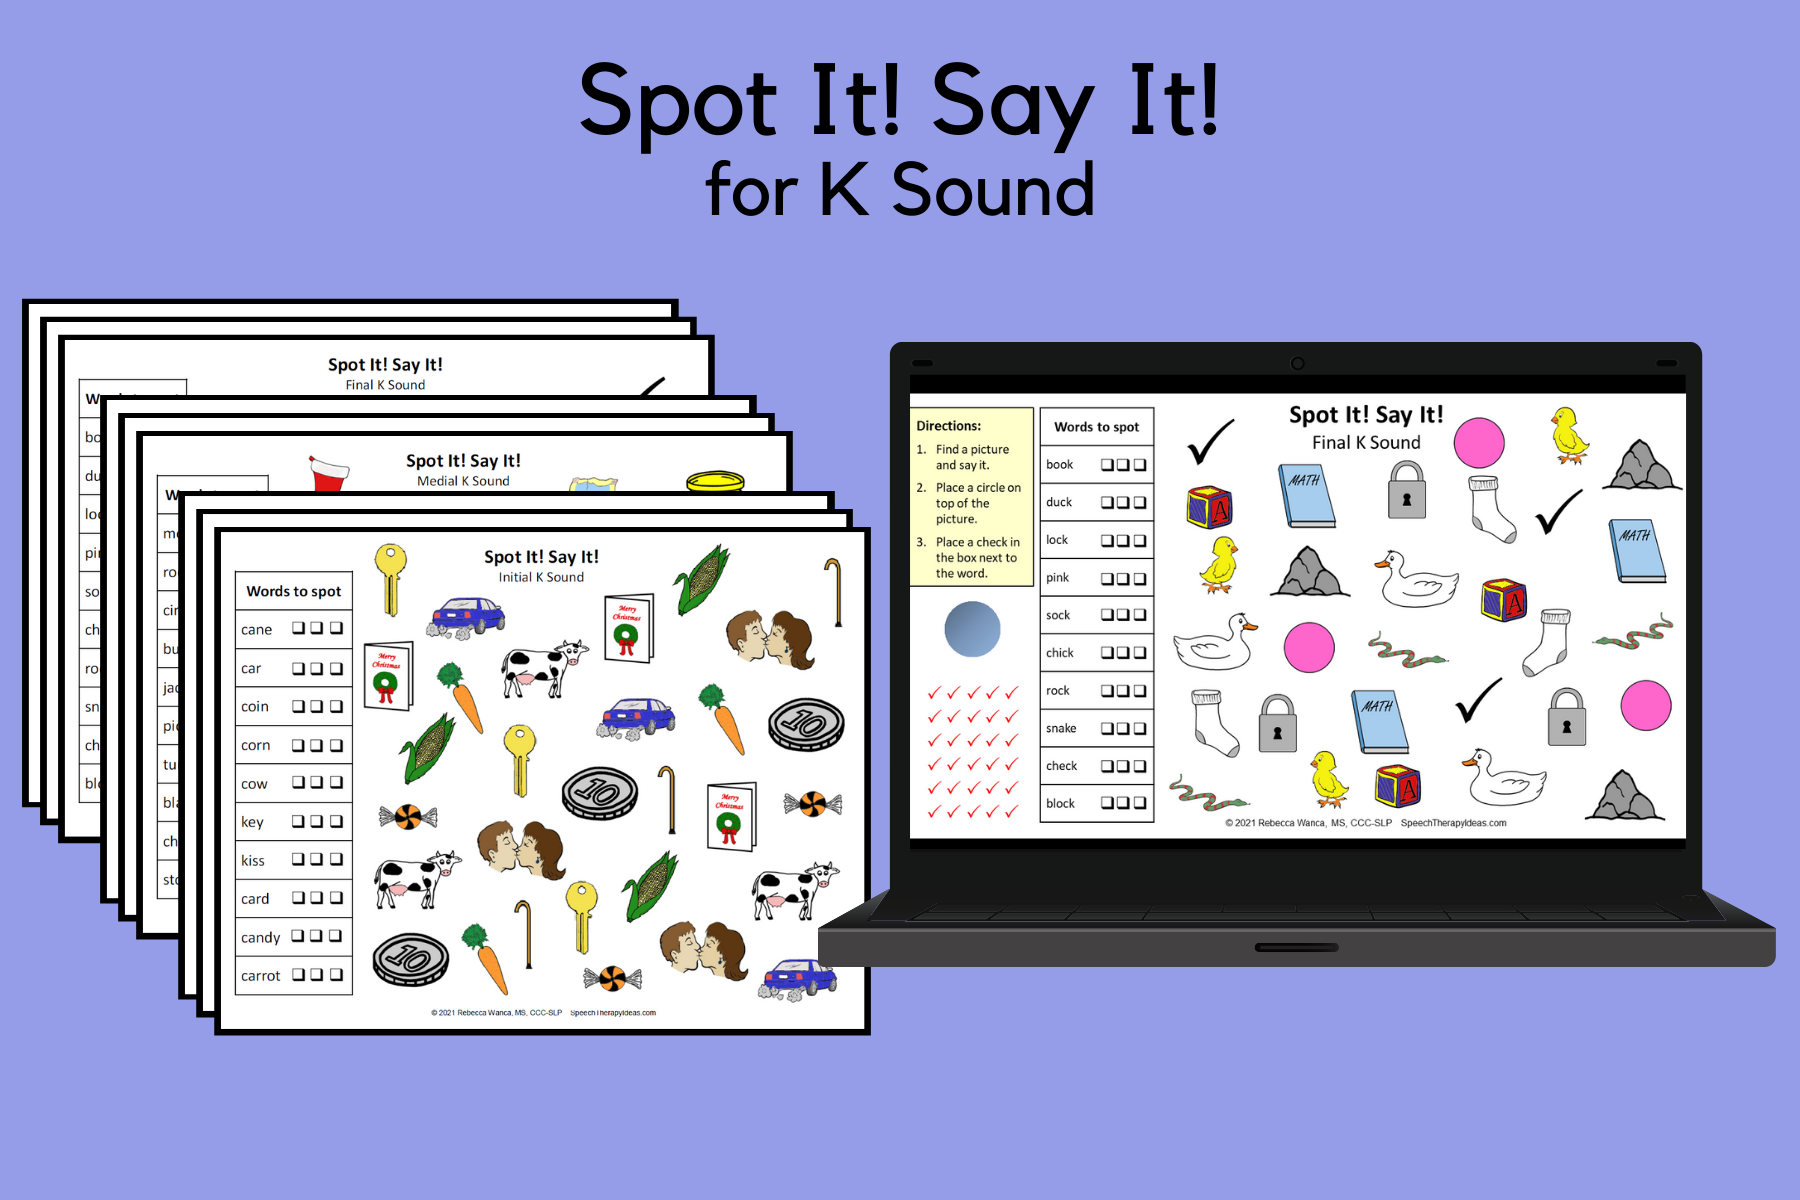 Spot It! Say It! Pages for K Sound